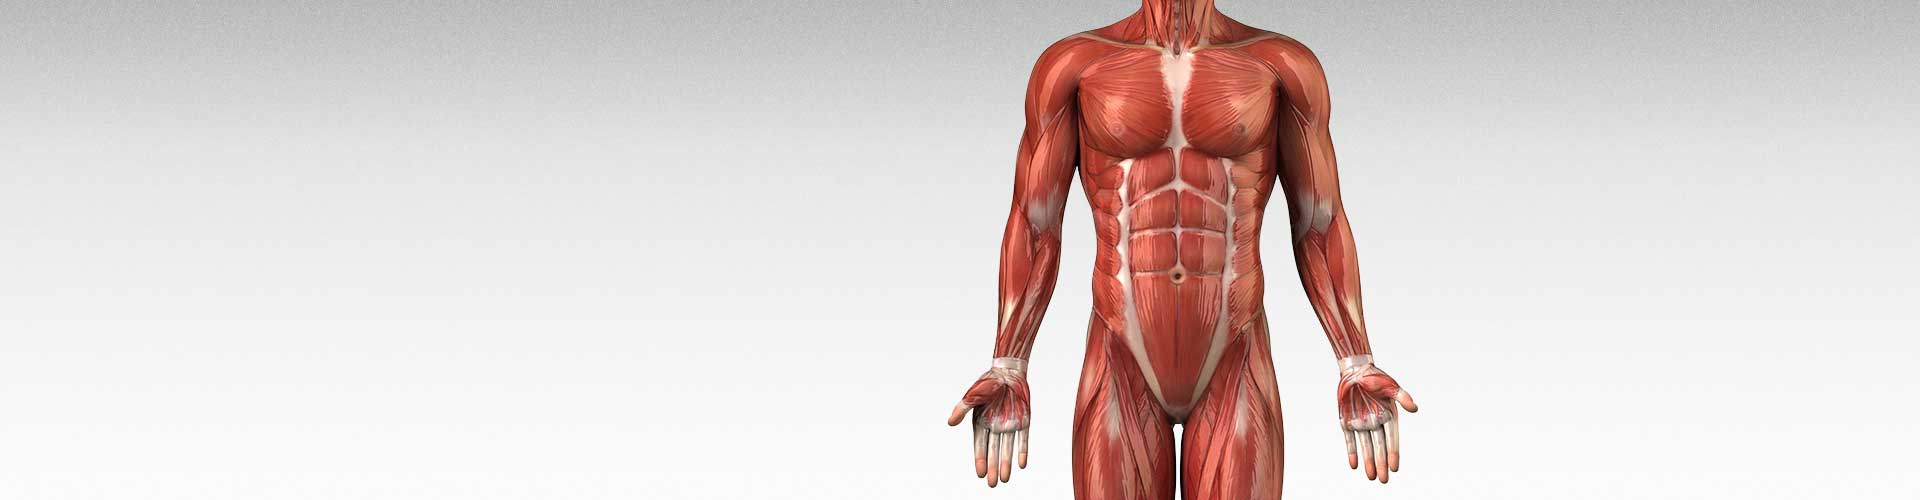 how do muscles grow? the science of muscle growth, Muscles